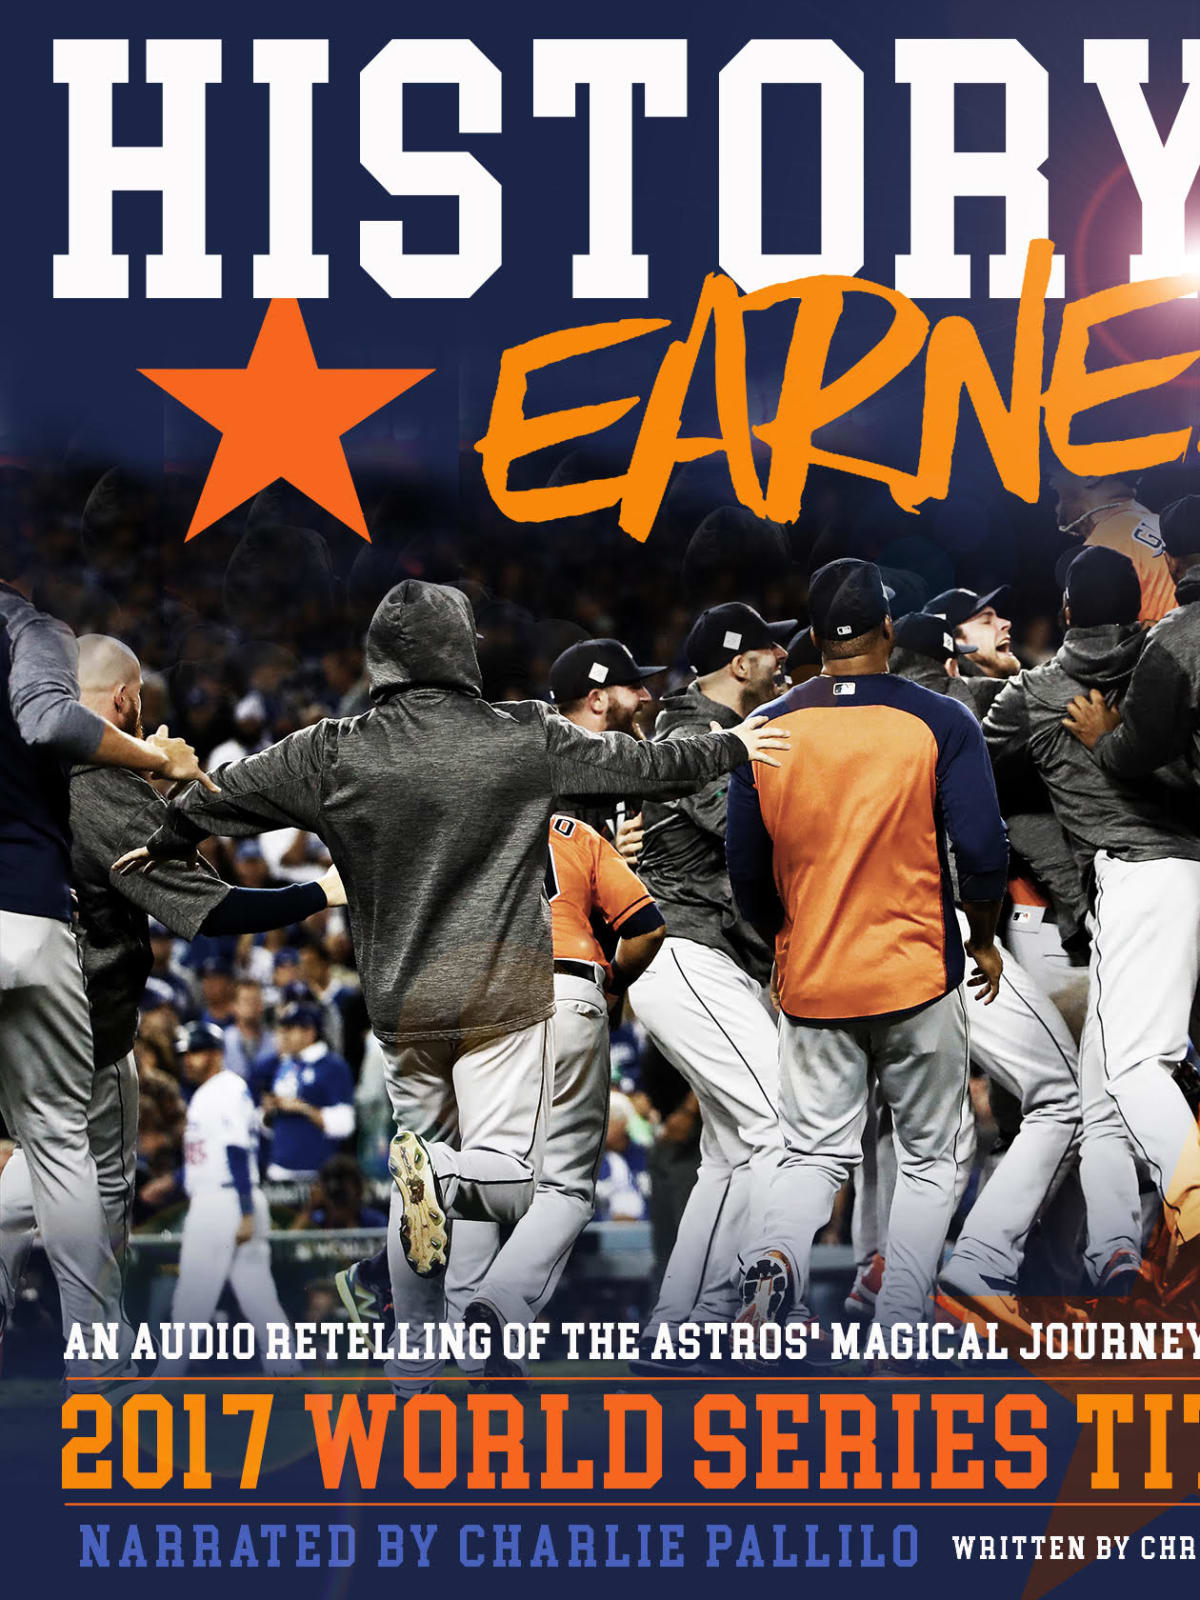 History Earned, World Series audiobook, Astros